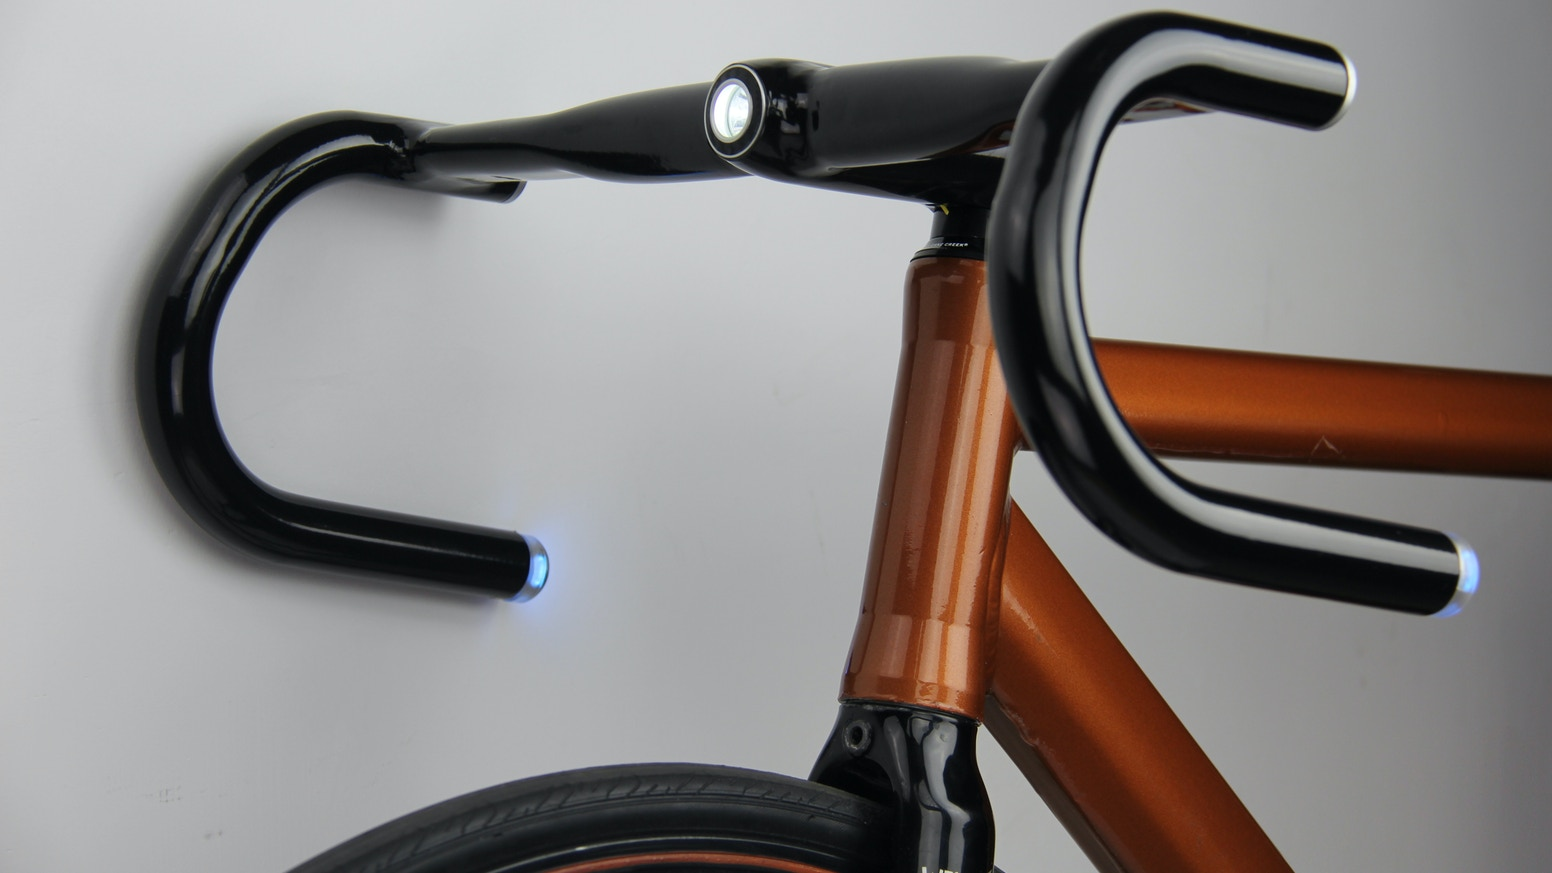 The world's first integrated headlight & blinker system for bicycles. Utilize Bluetooth 4.0 & GPS to add smart features to any bike.